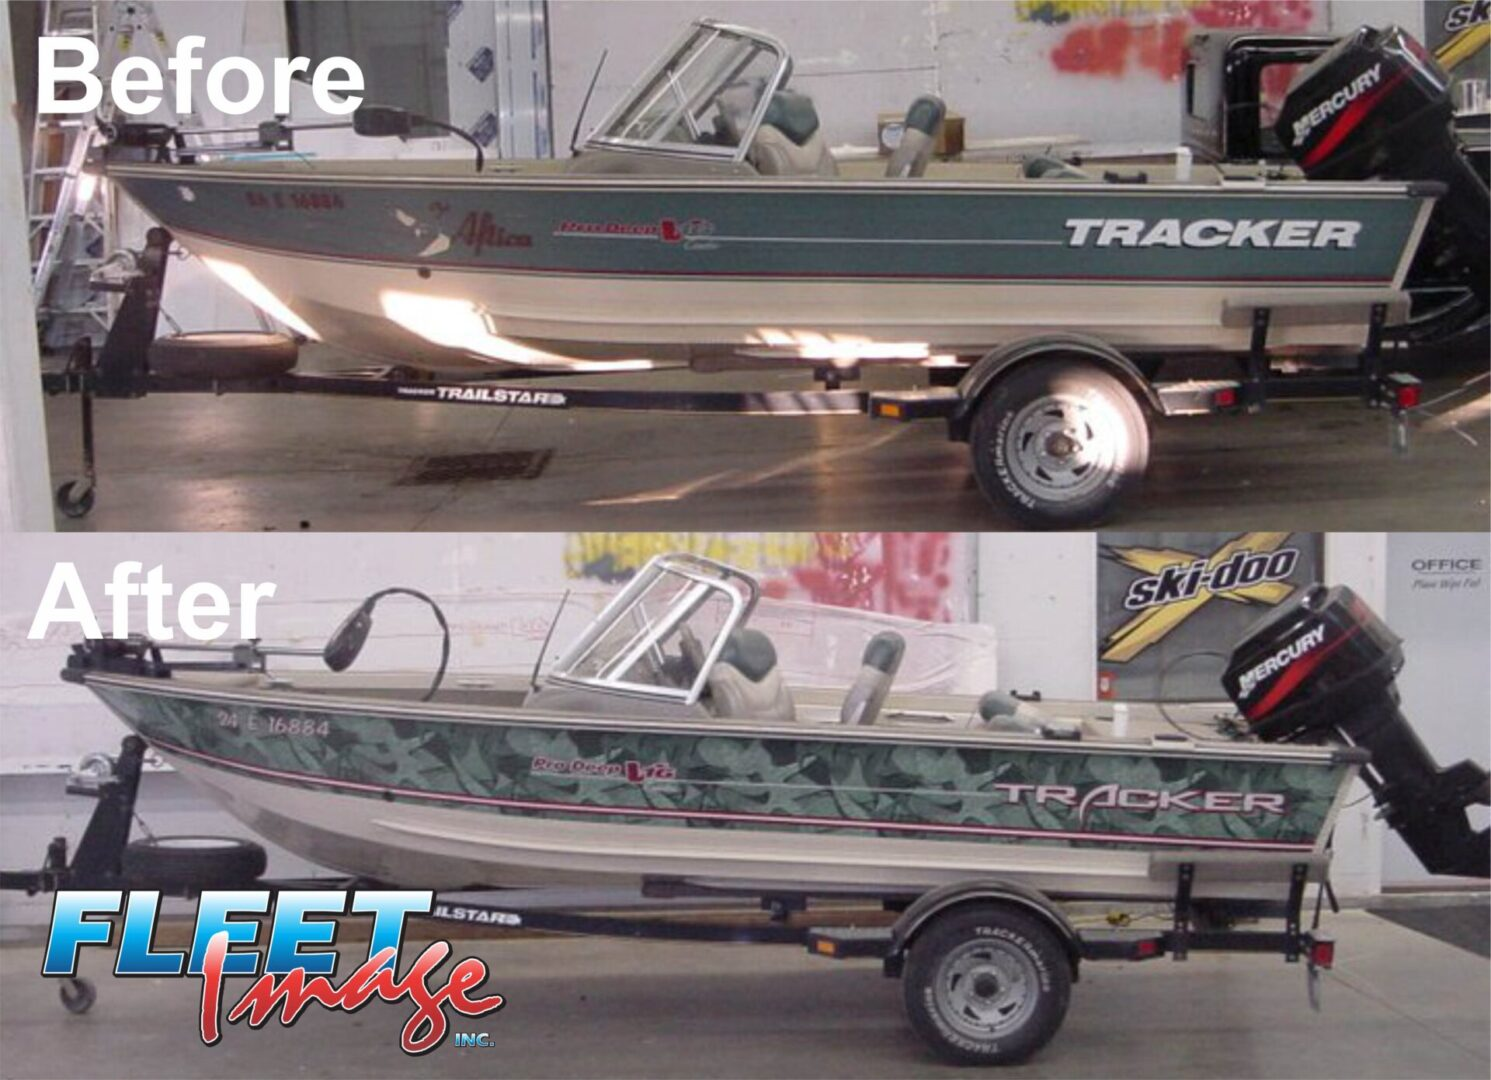 Before and after Tracker boat